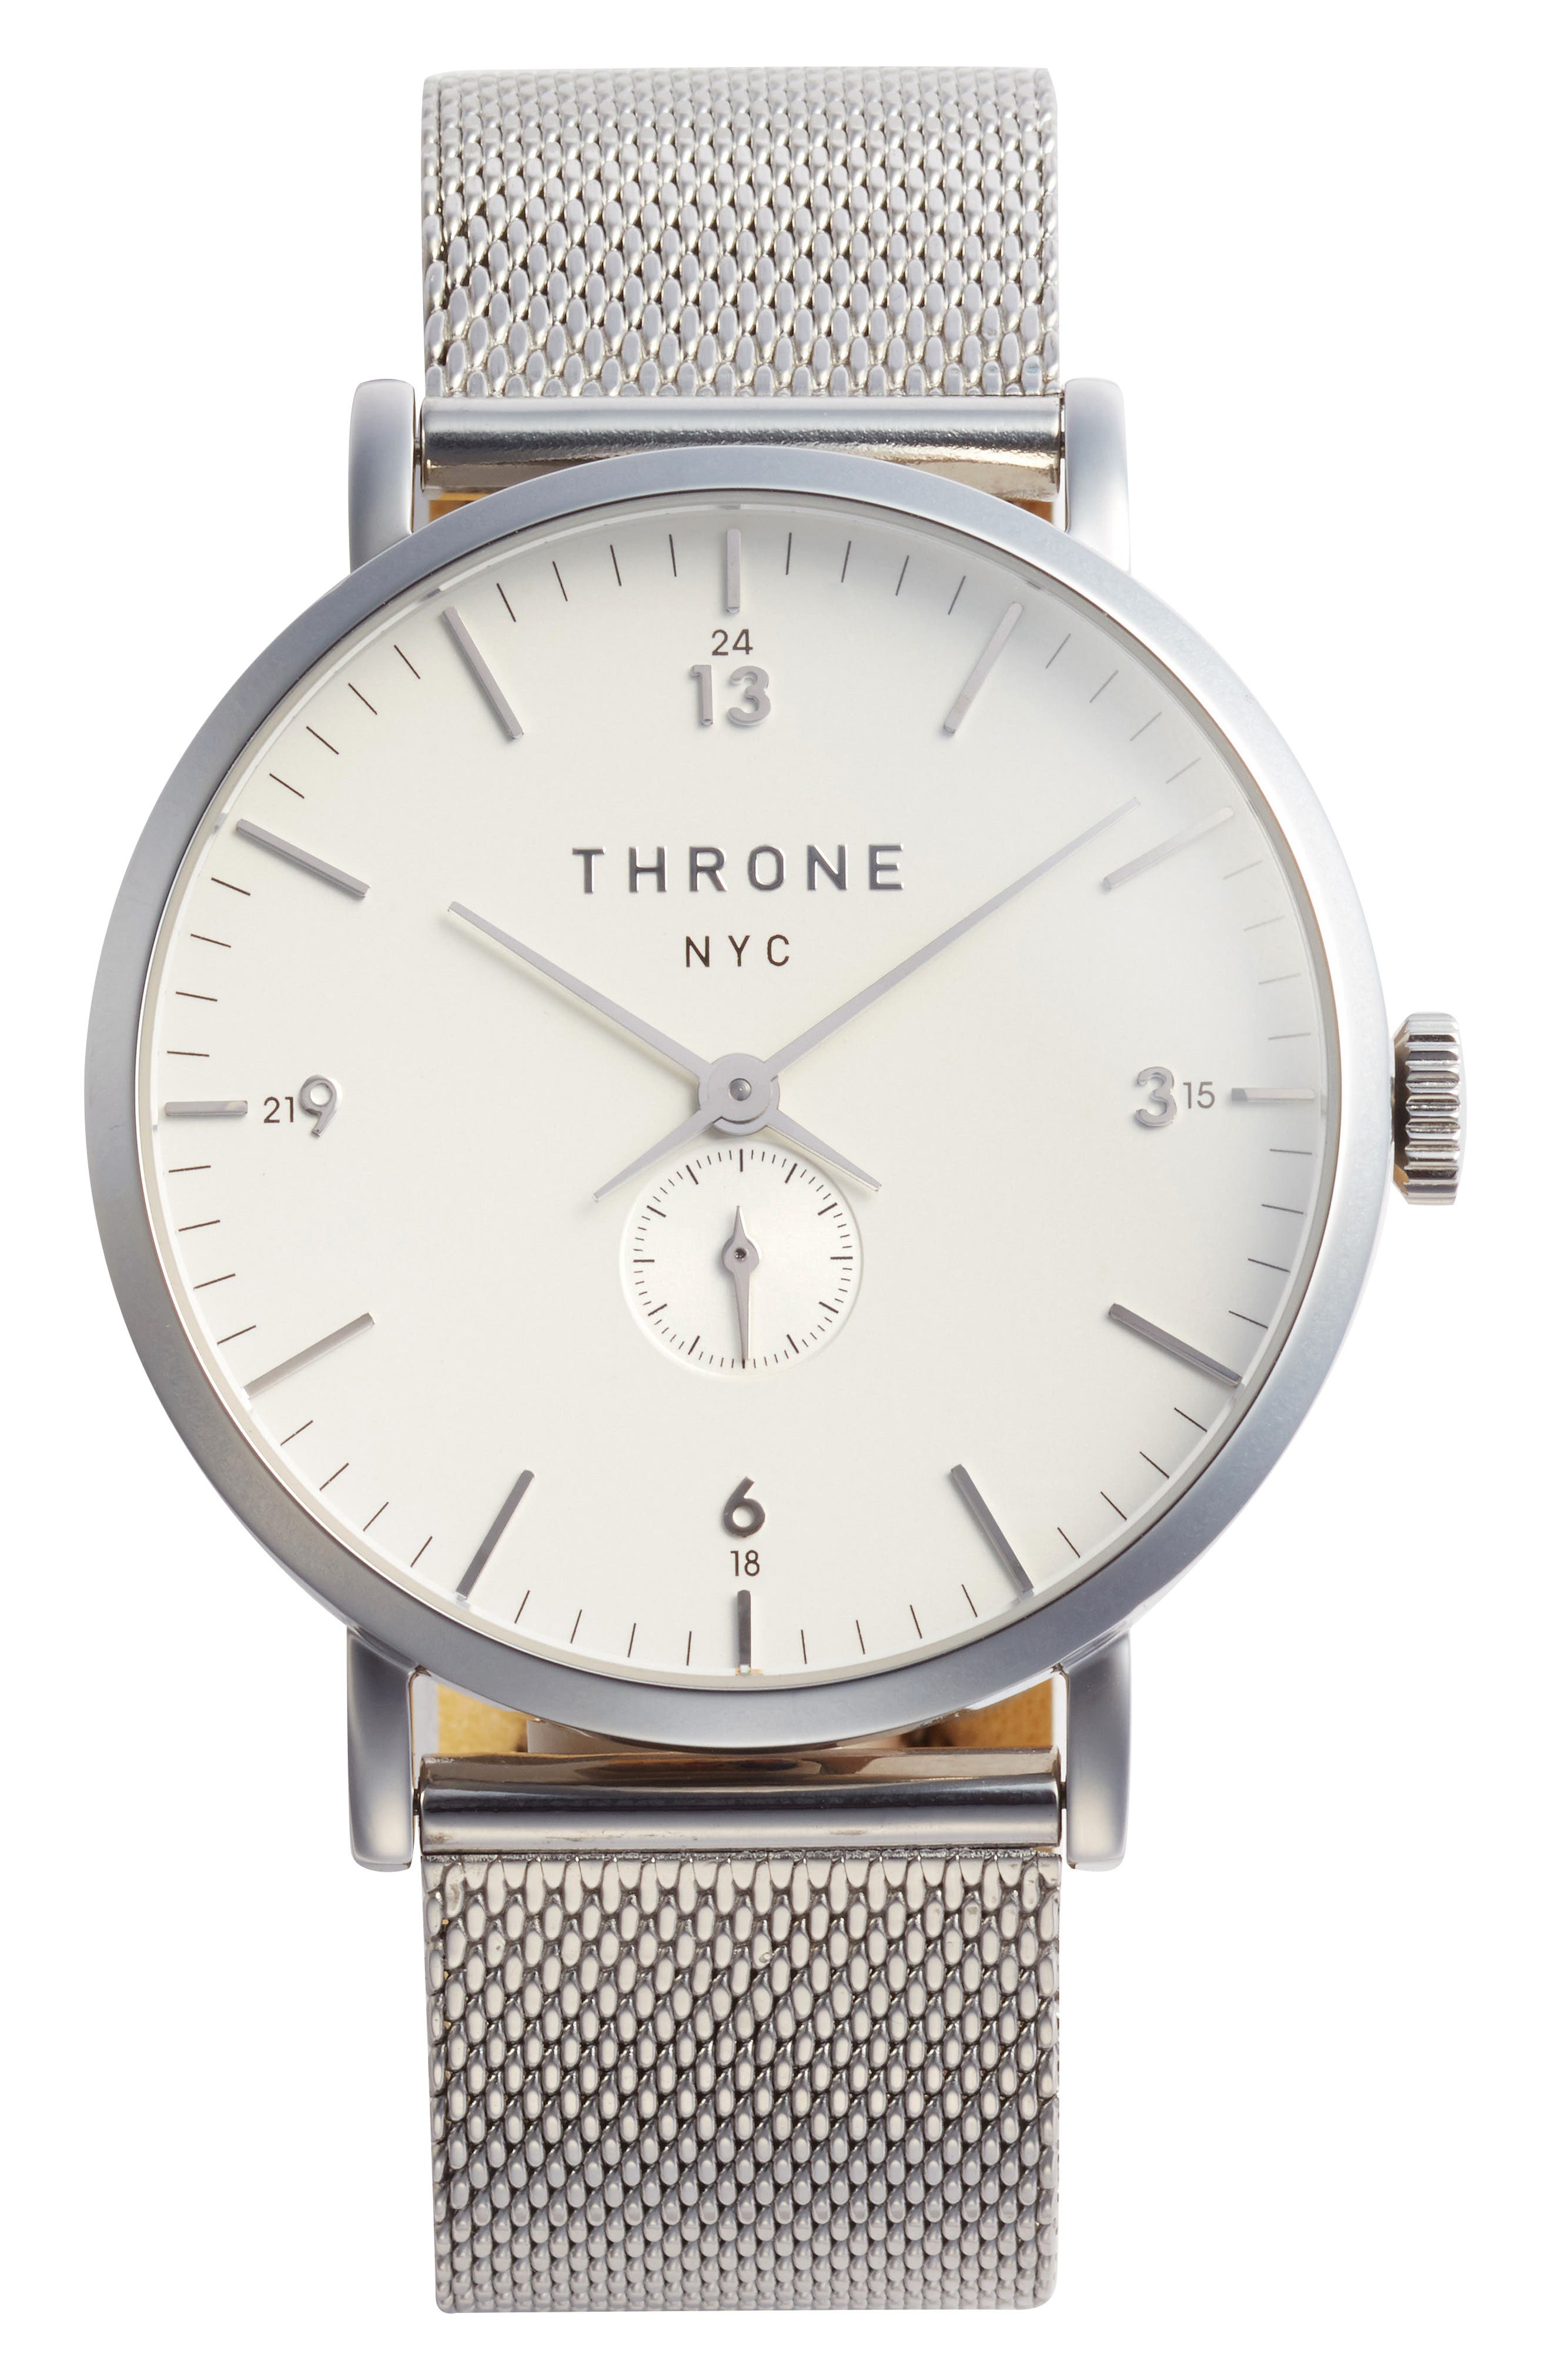 THRONE 1.0 Mesh Strap Watch, 40mm, Main, color, 040